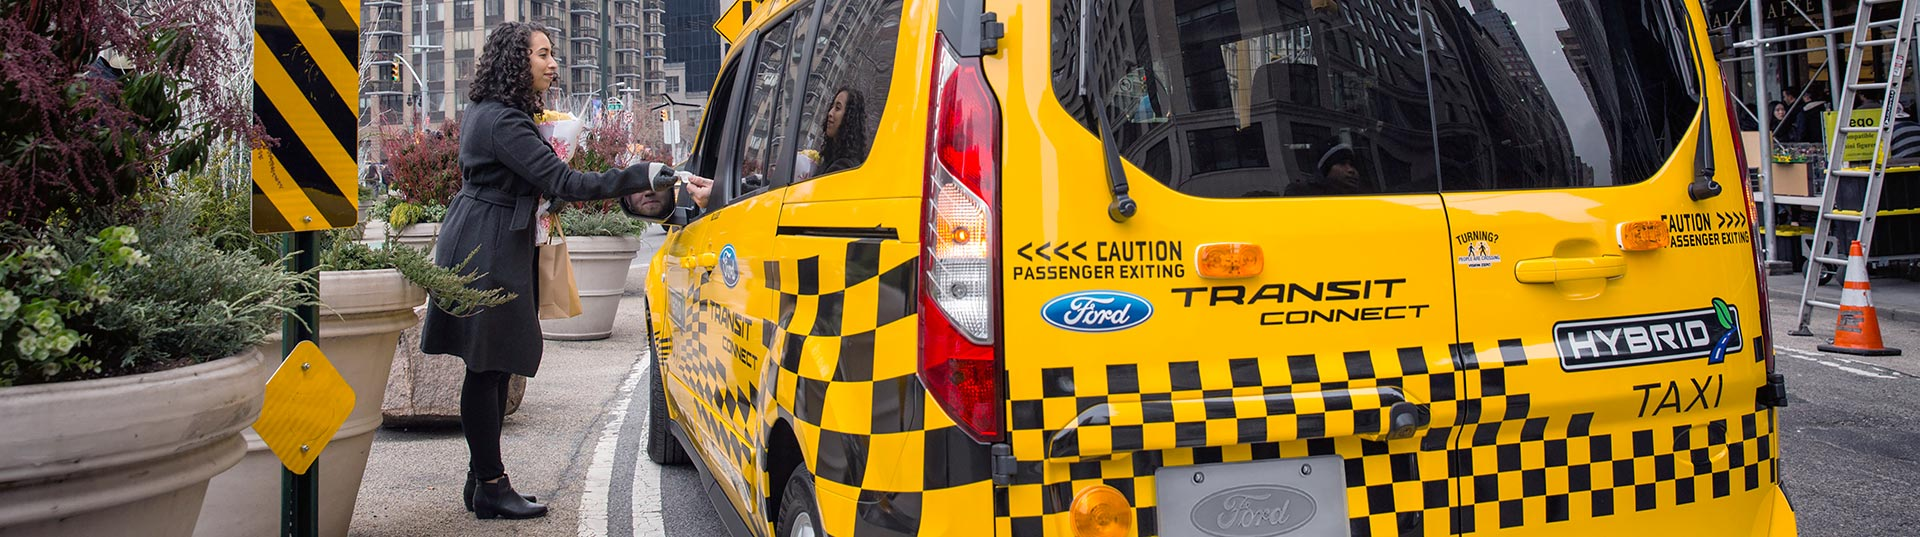 Ford Transit Hybrid Taxi